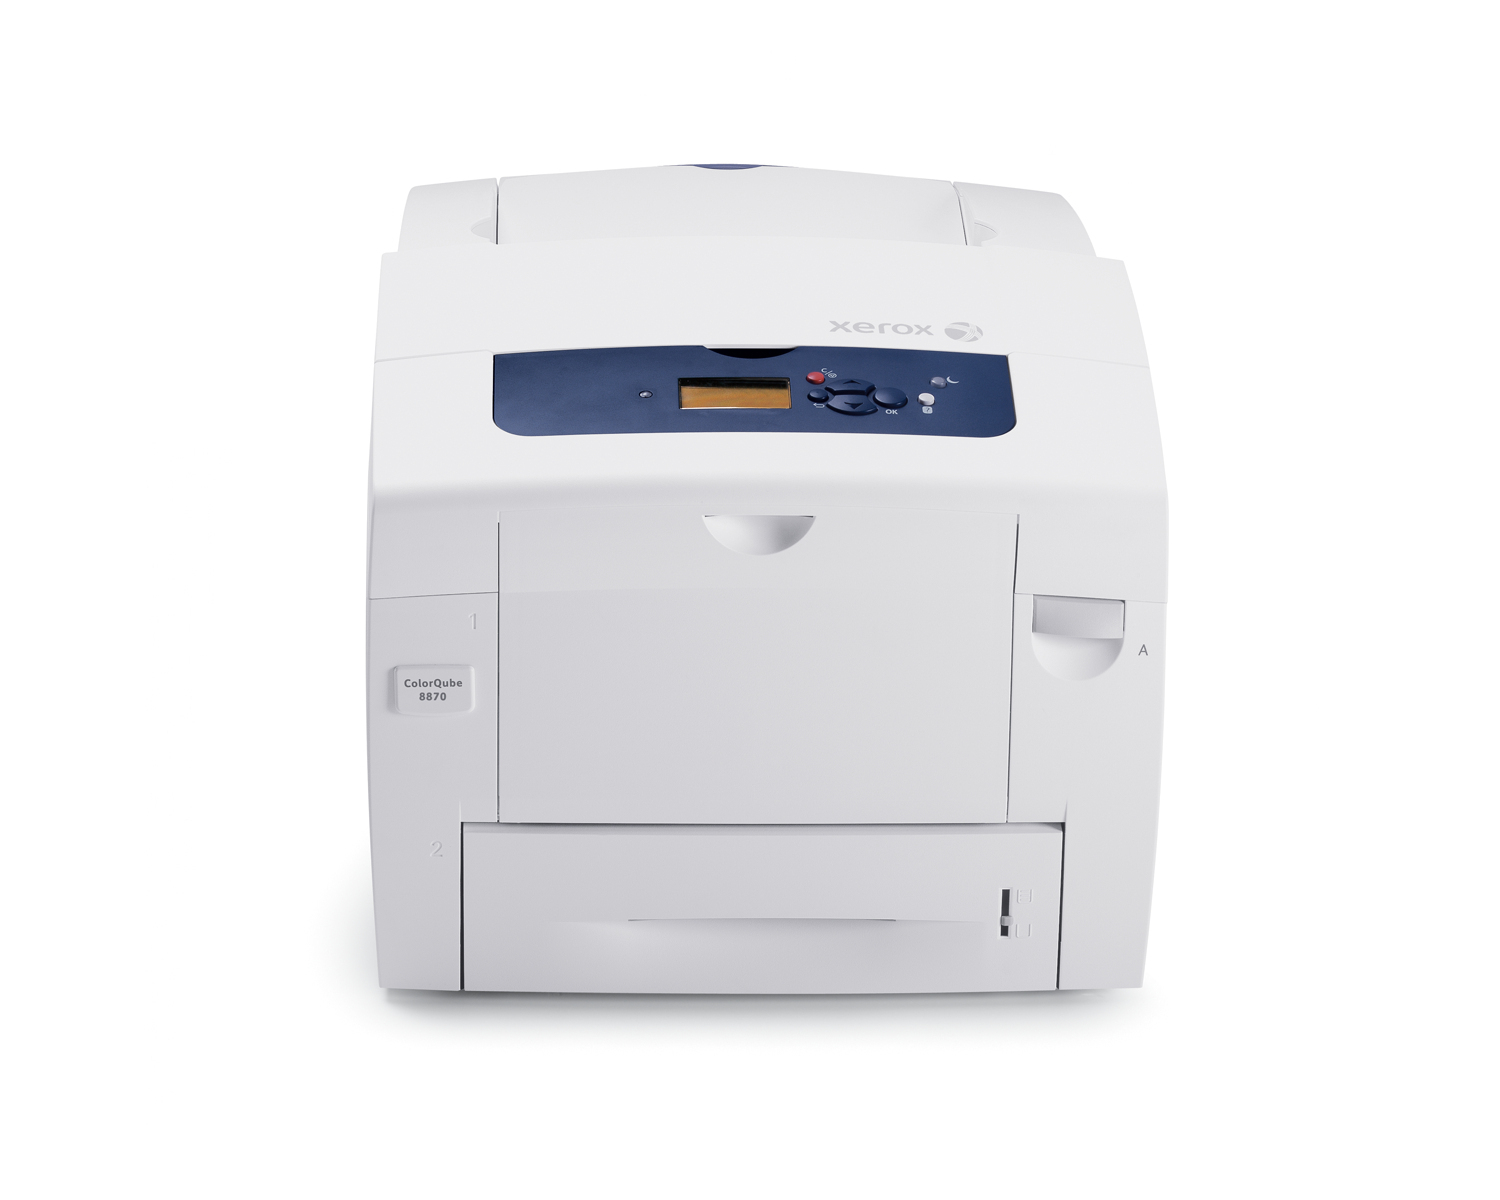 8870_DN Xerox Phaser 8870DN 8870 A4 Workgroup USB Duplex Network Wax Printer  - Refurbished with 3 months RTB warranty